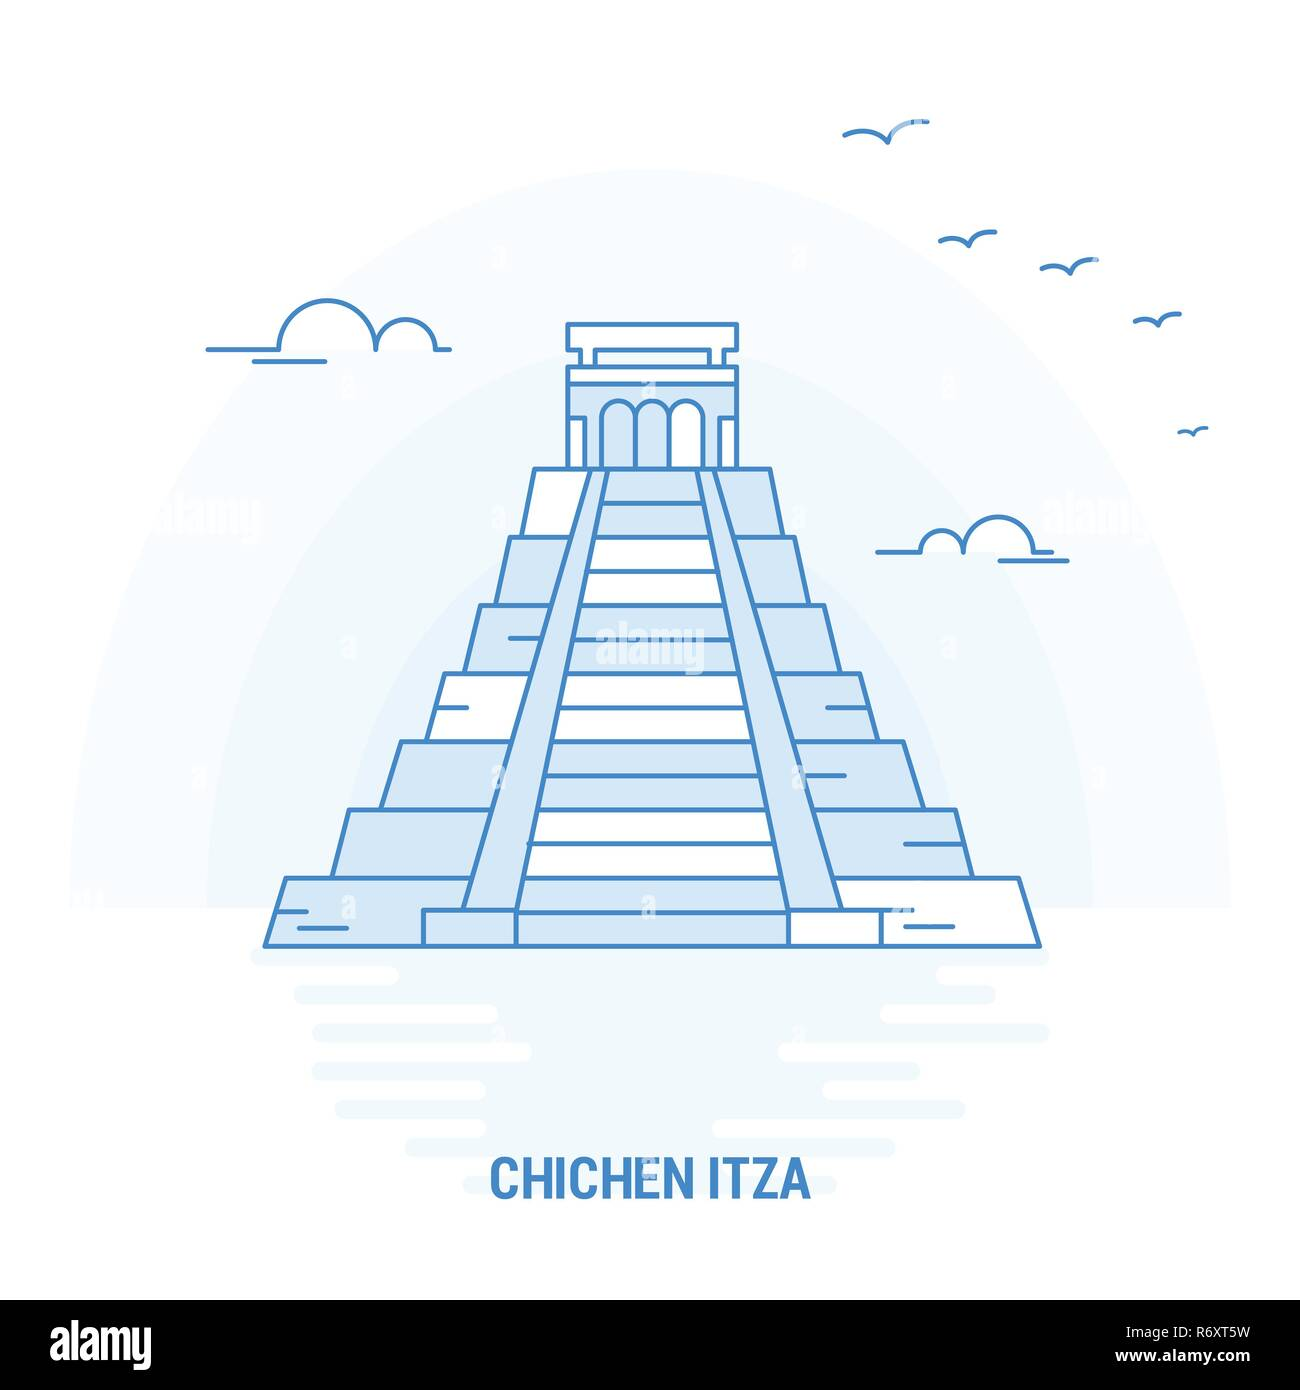 CHICHEN ITZA Blue Landmark. Creative background and Poster Template - Stock Image